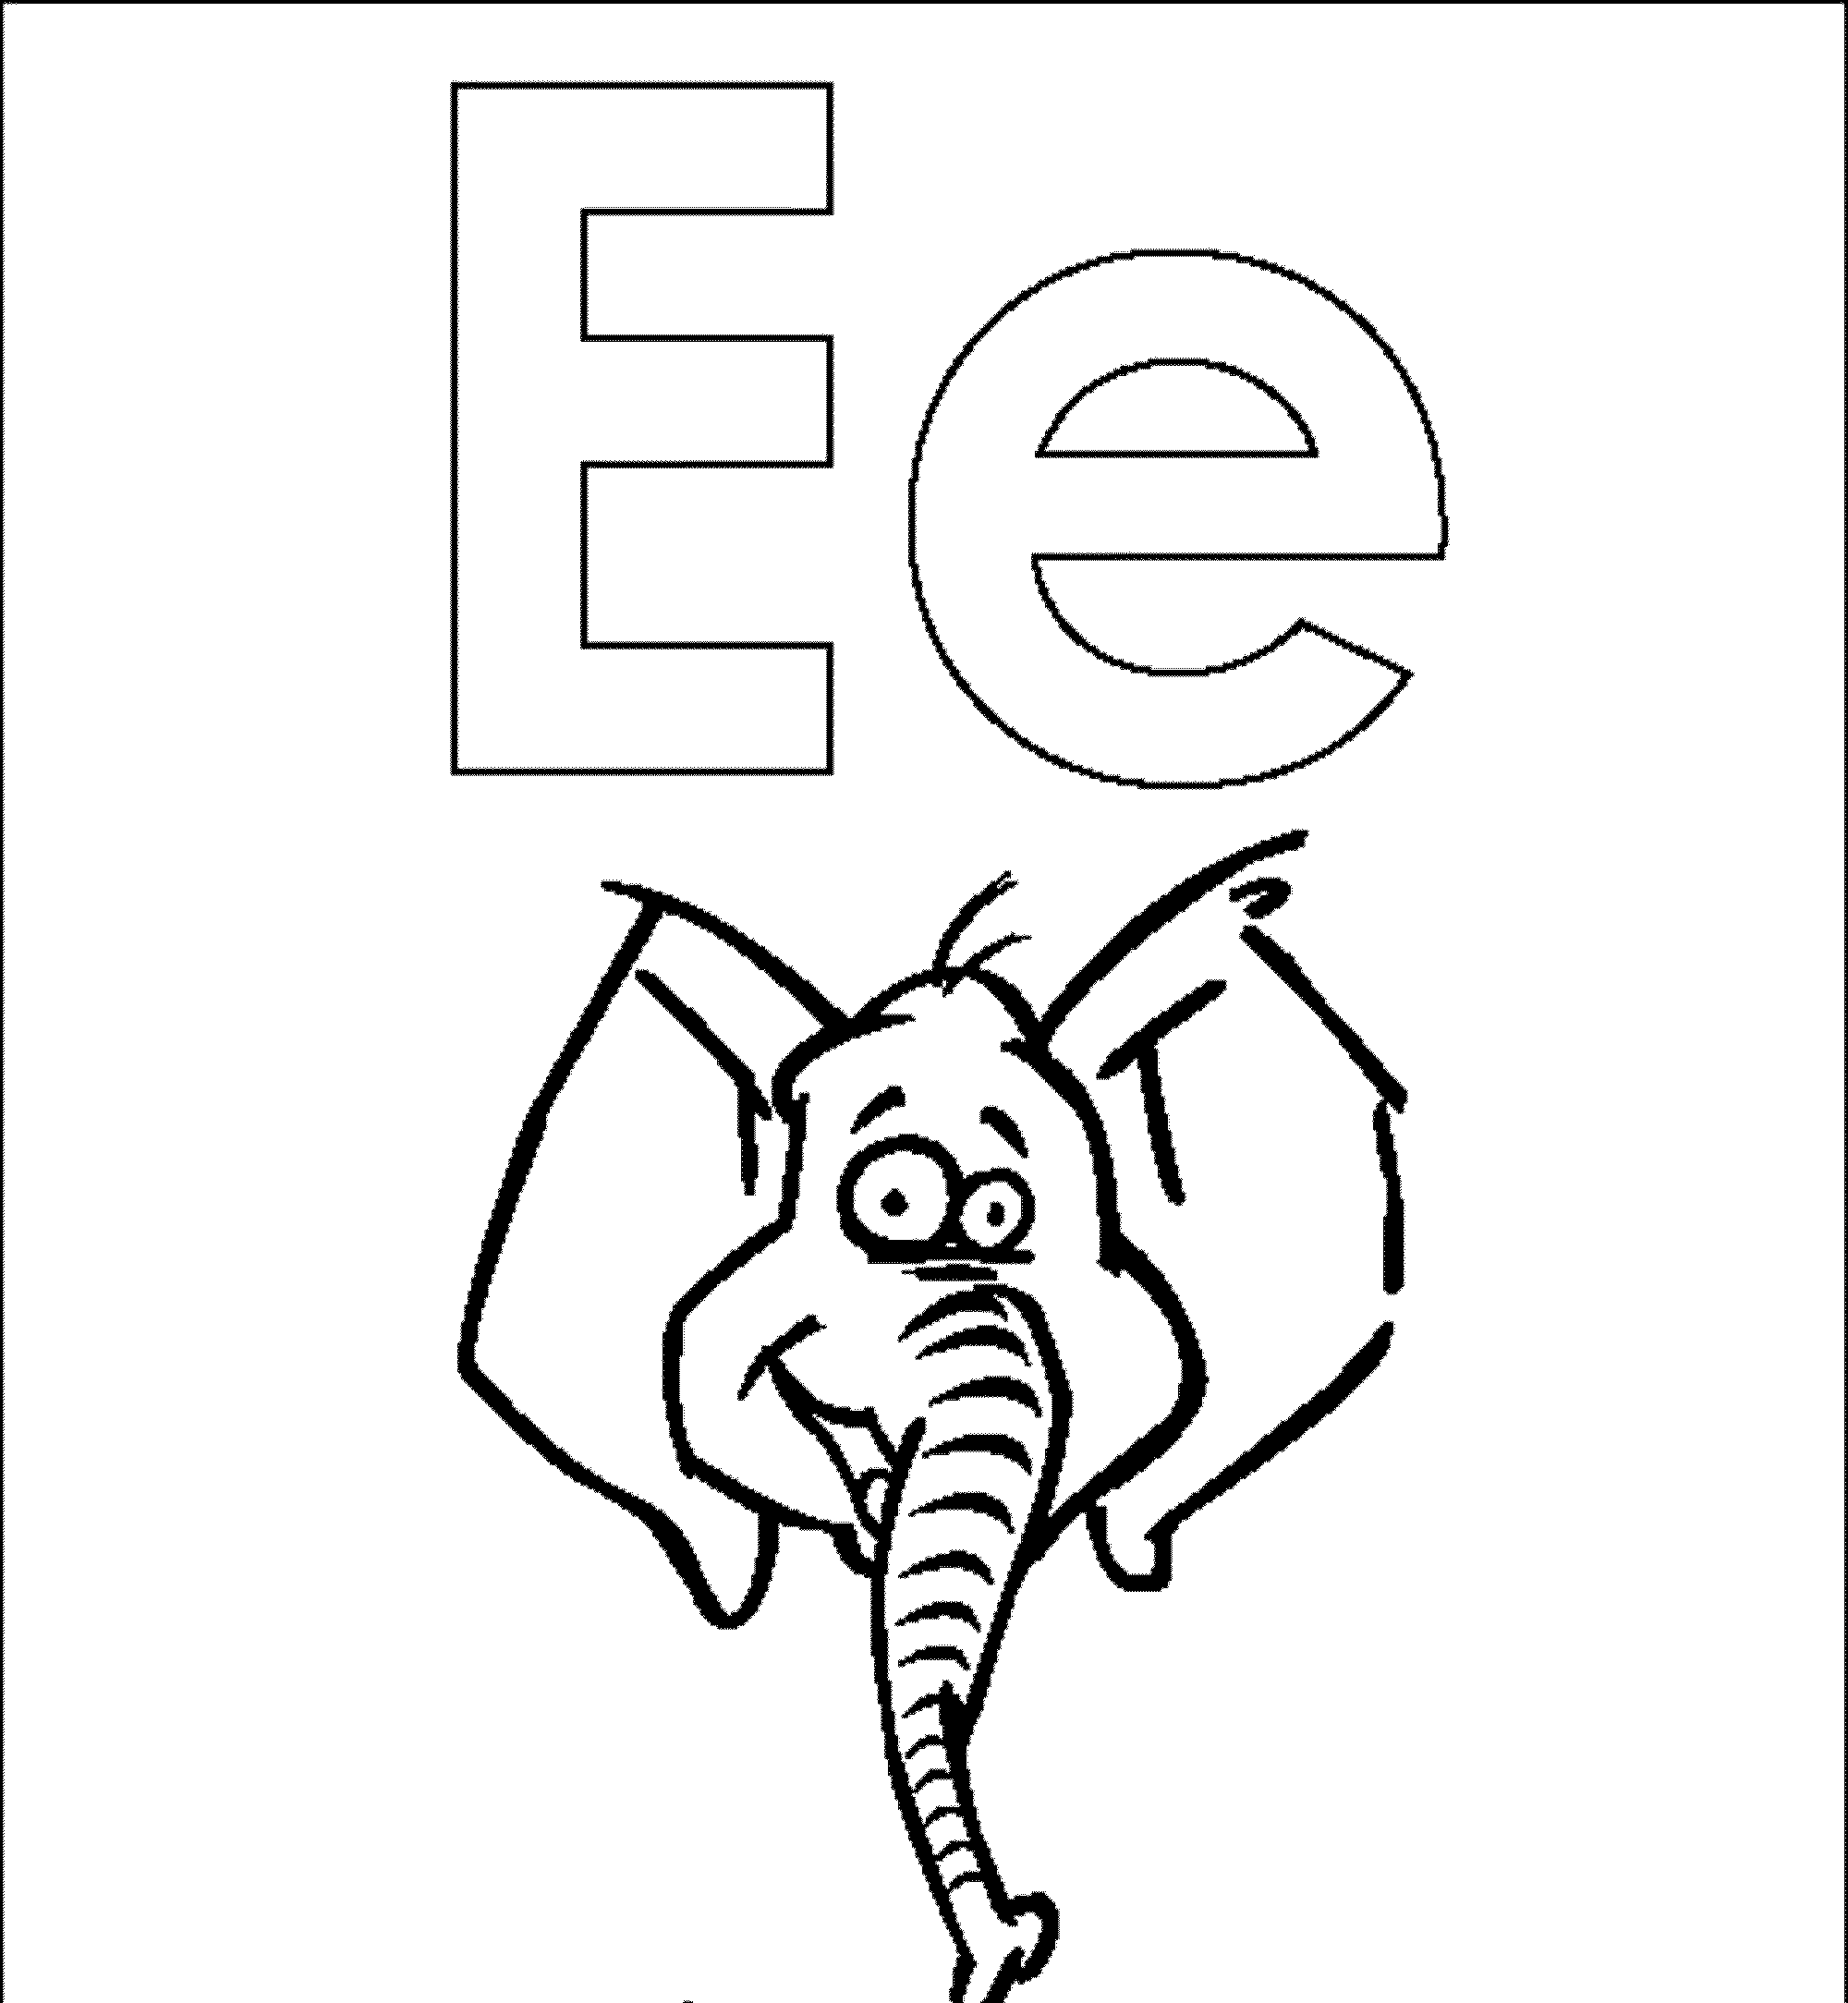 2000x2168 Letter E Elephant Coloring Pages Alphabet